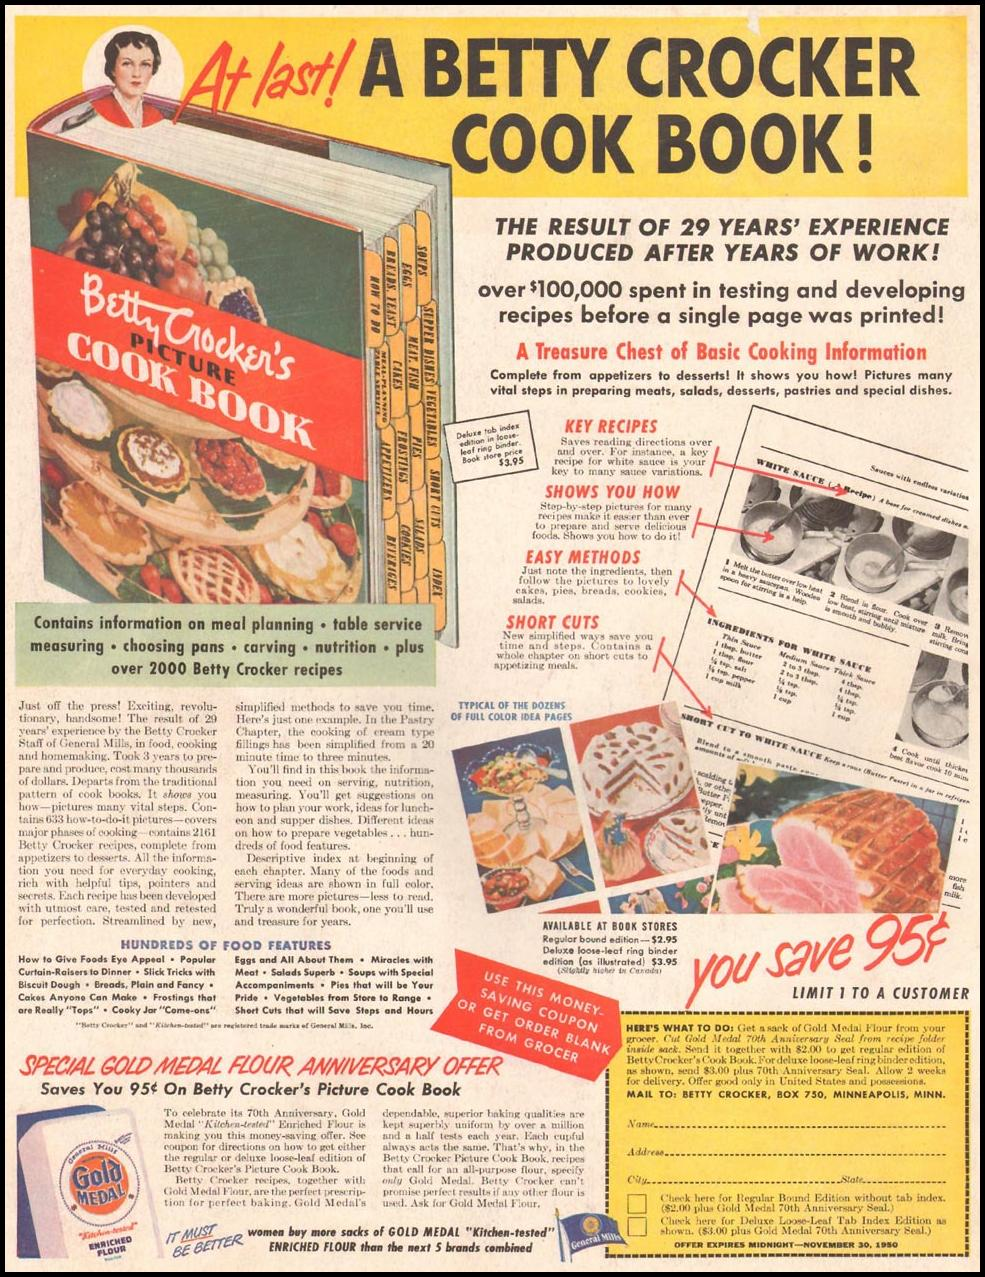 BETTY CROCKER PICTURE COOK BOOK LADIES' HOME JOURNAL 11/01/1950 BACK COVER